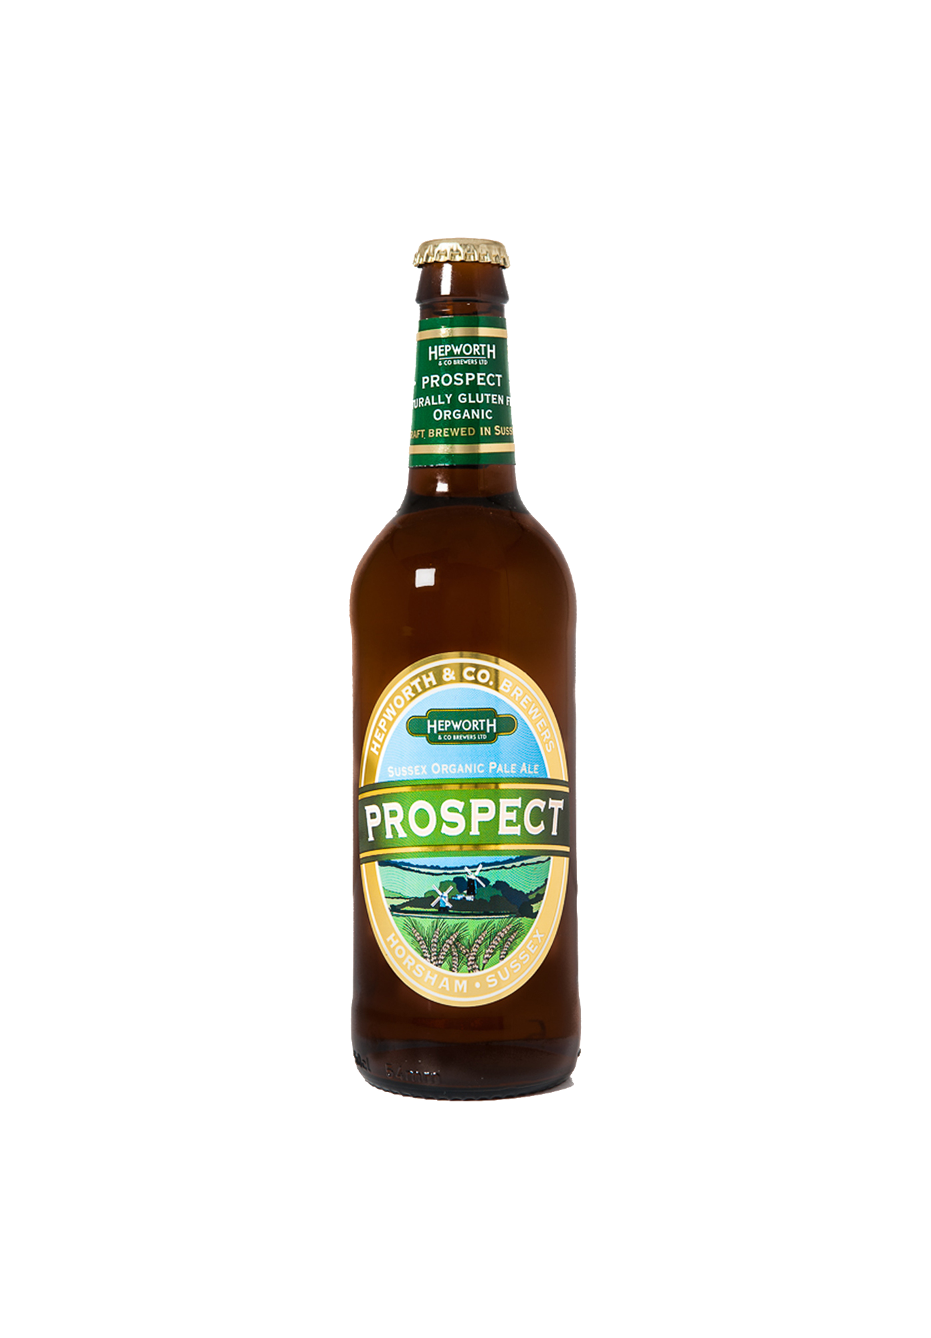 Hepworth & Co Prospect Organic Pale Ale (500 ml bottle)